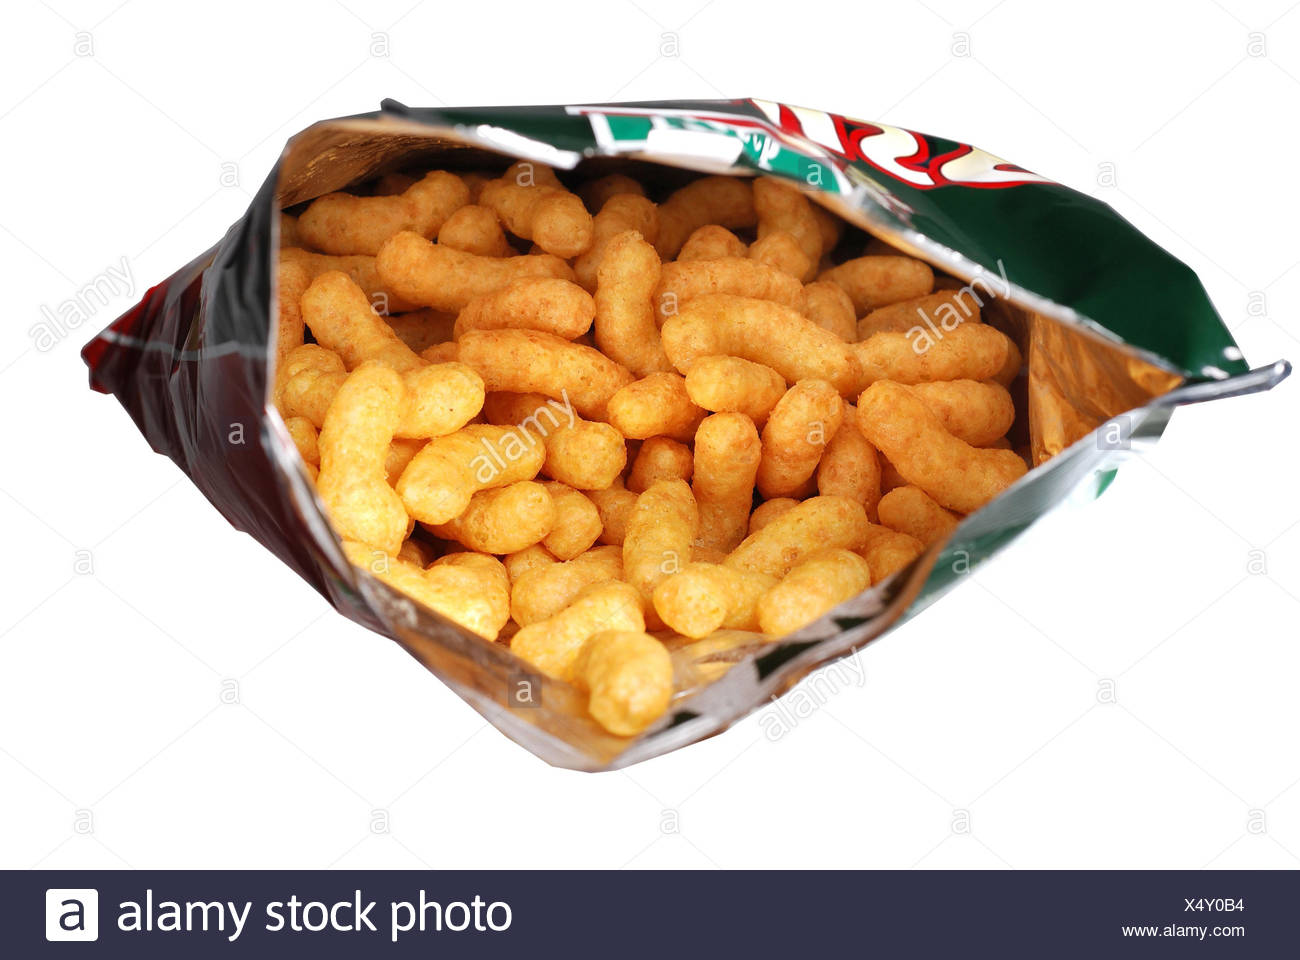 Peanut flip, envelope, openly, savory snacks, breadsticks, Knabberzeug, bag, peanut flip, flip, peanut, nutrition, unhealthily, fattener, bold, calories, rich in calorie, nibbles, salty, many, several, to pure griffins, - Stock Image